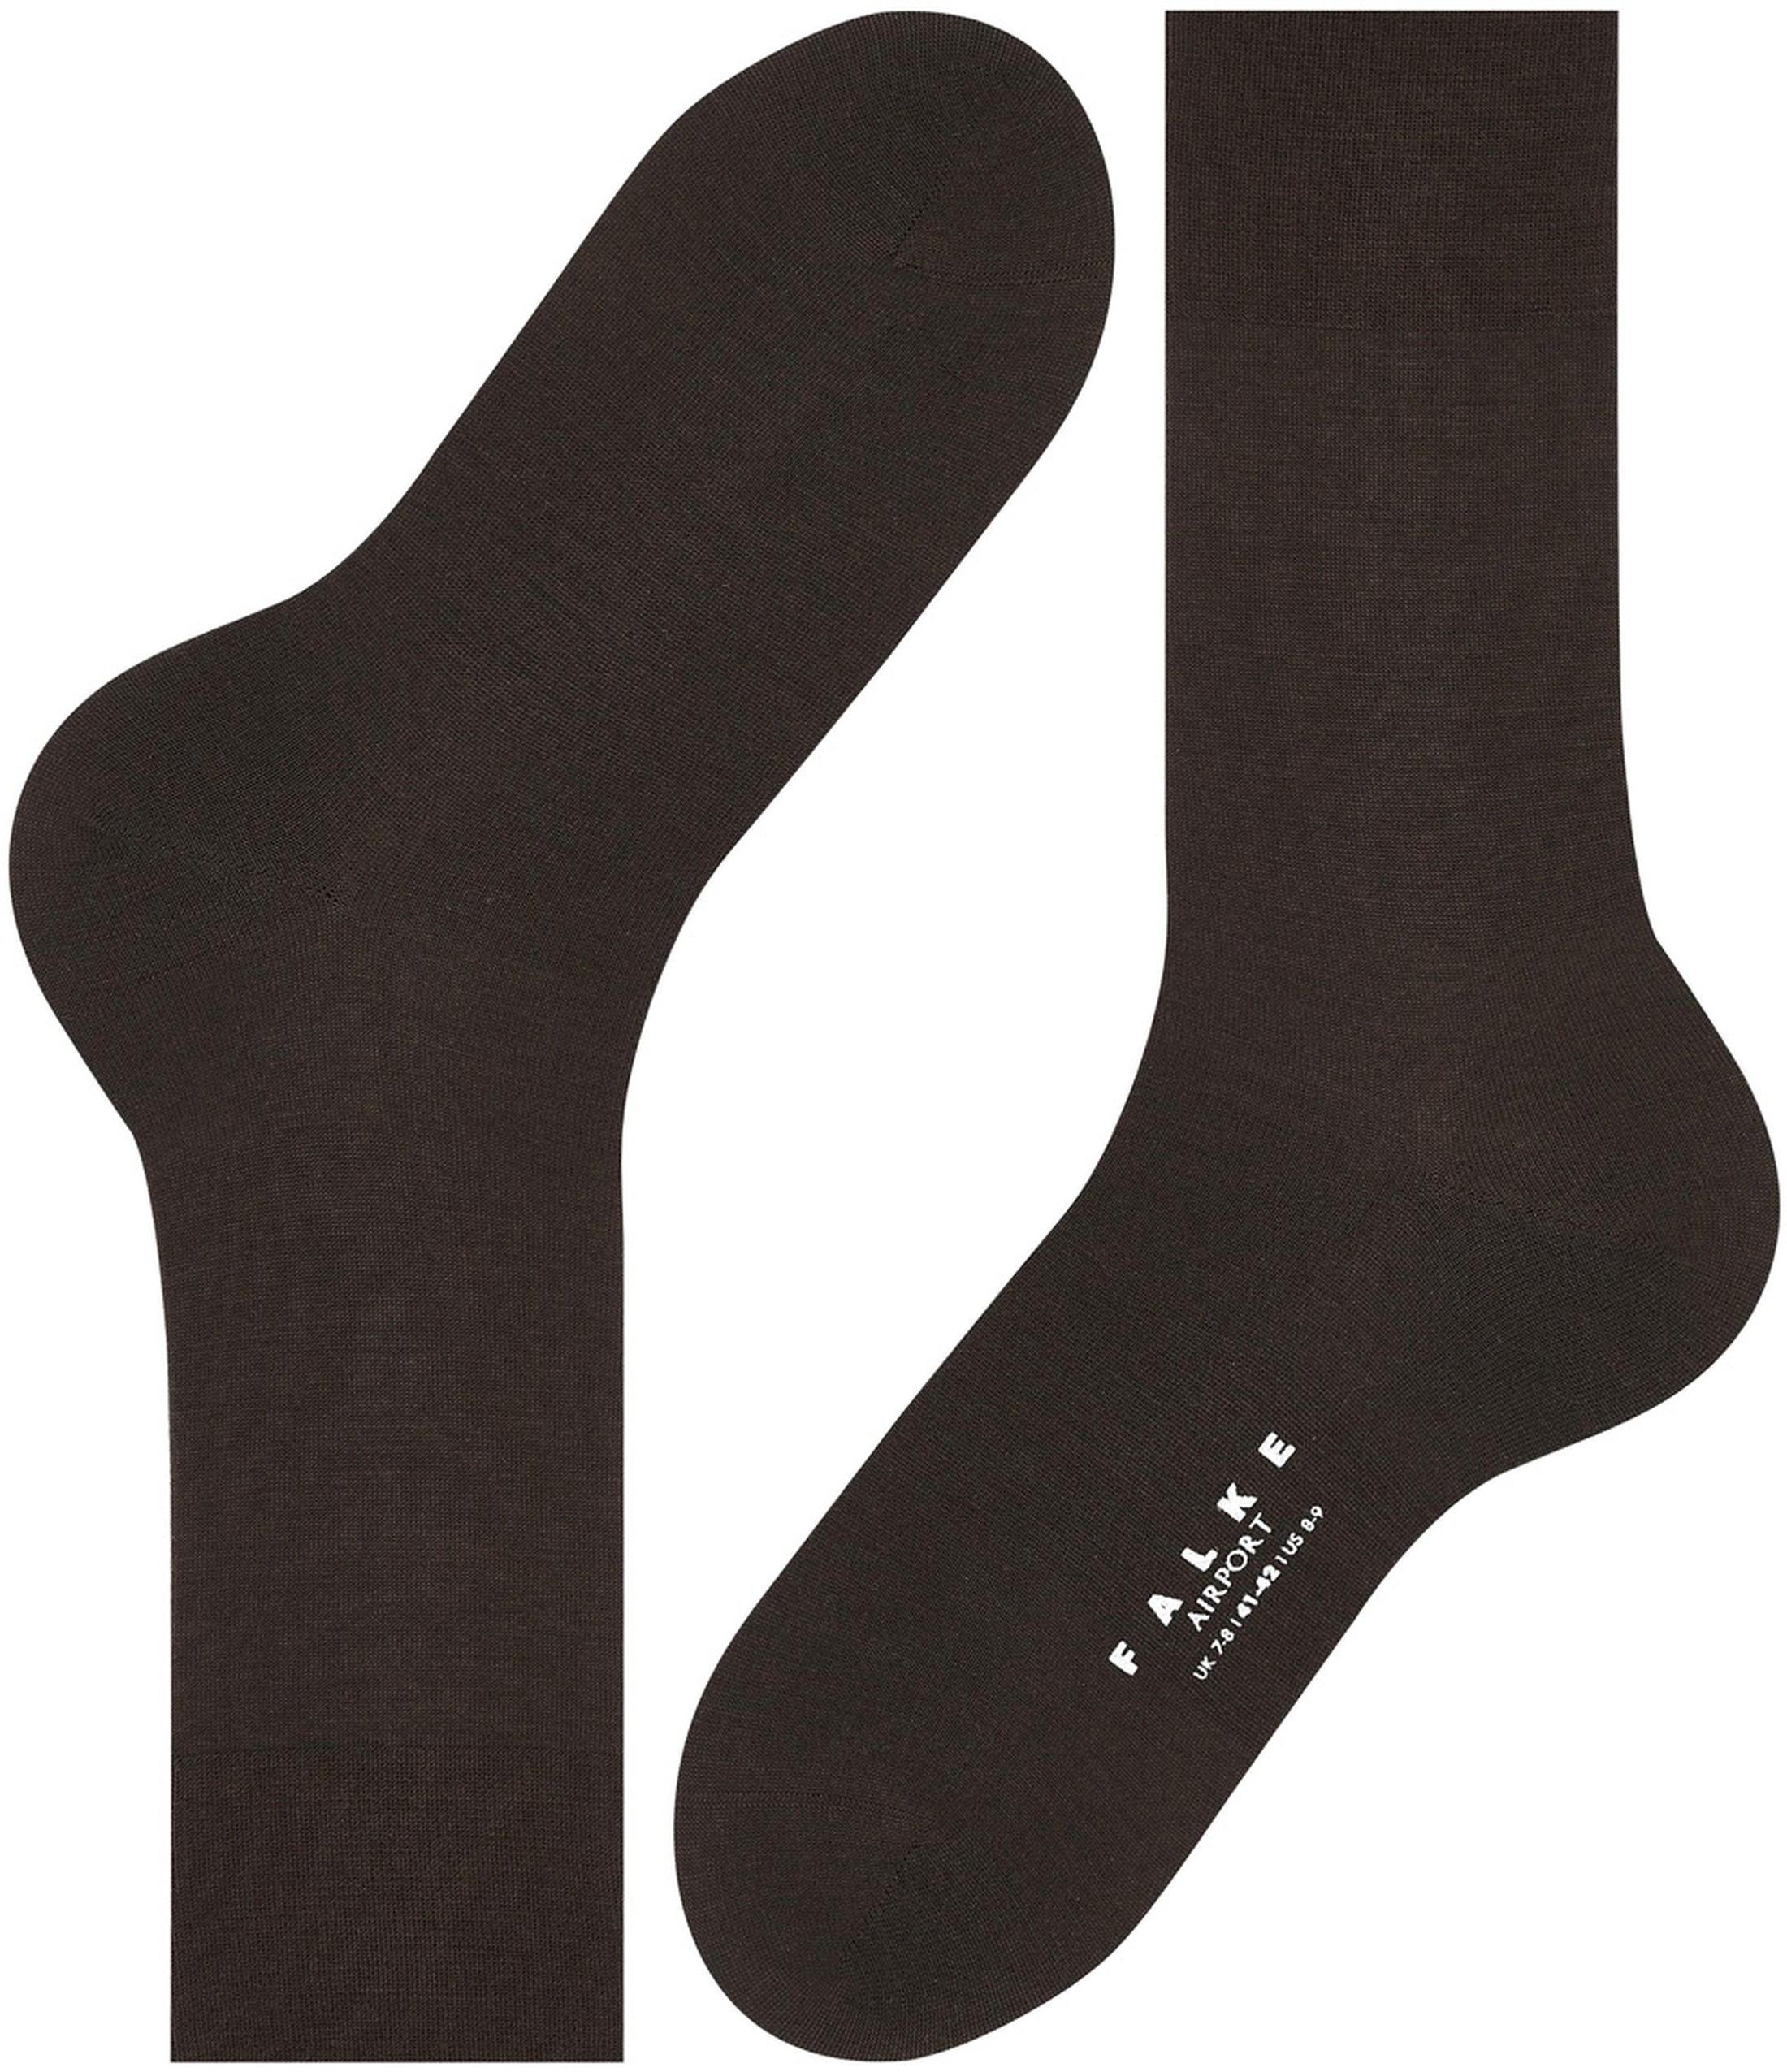 Falke Airport Socks Brown 5930